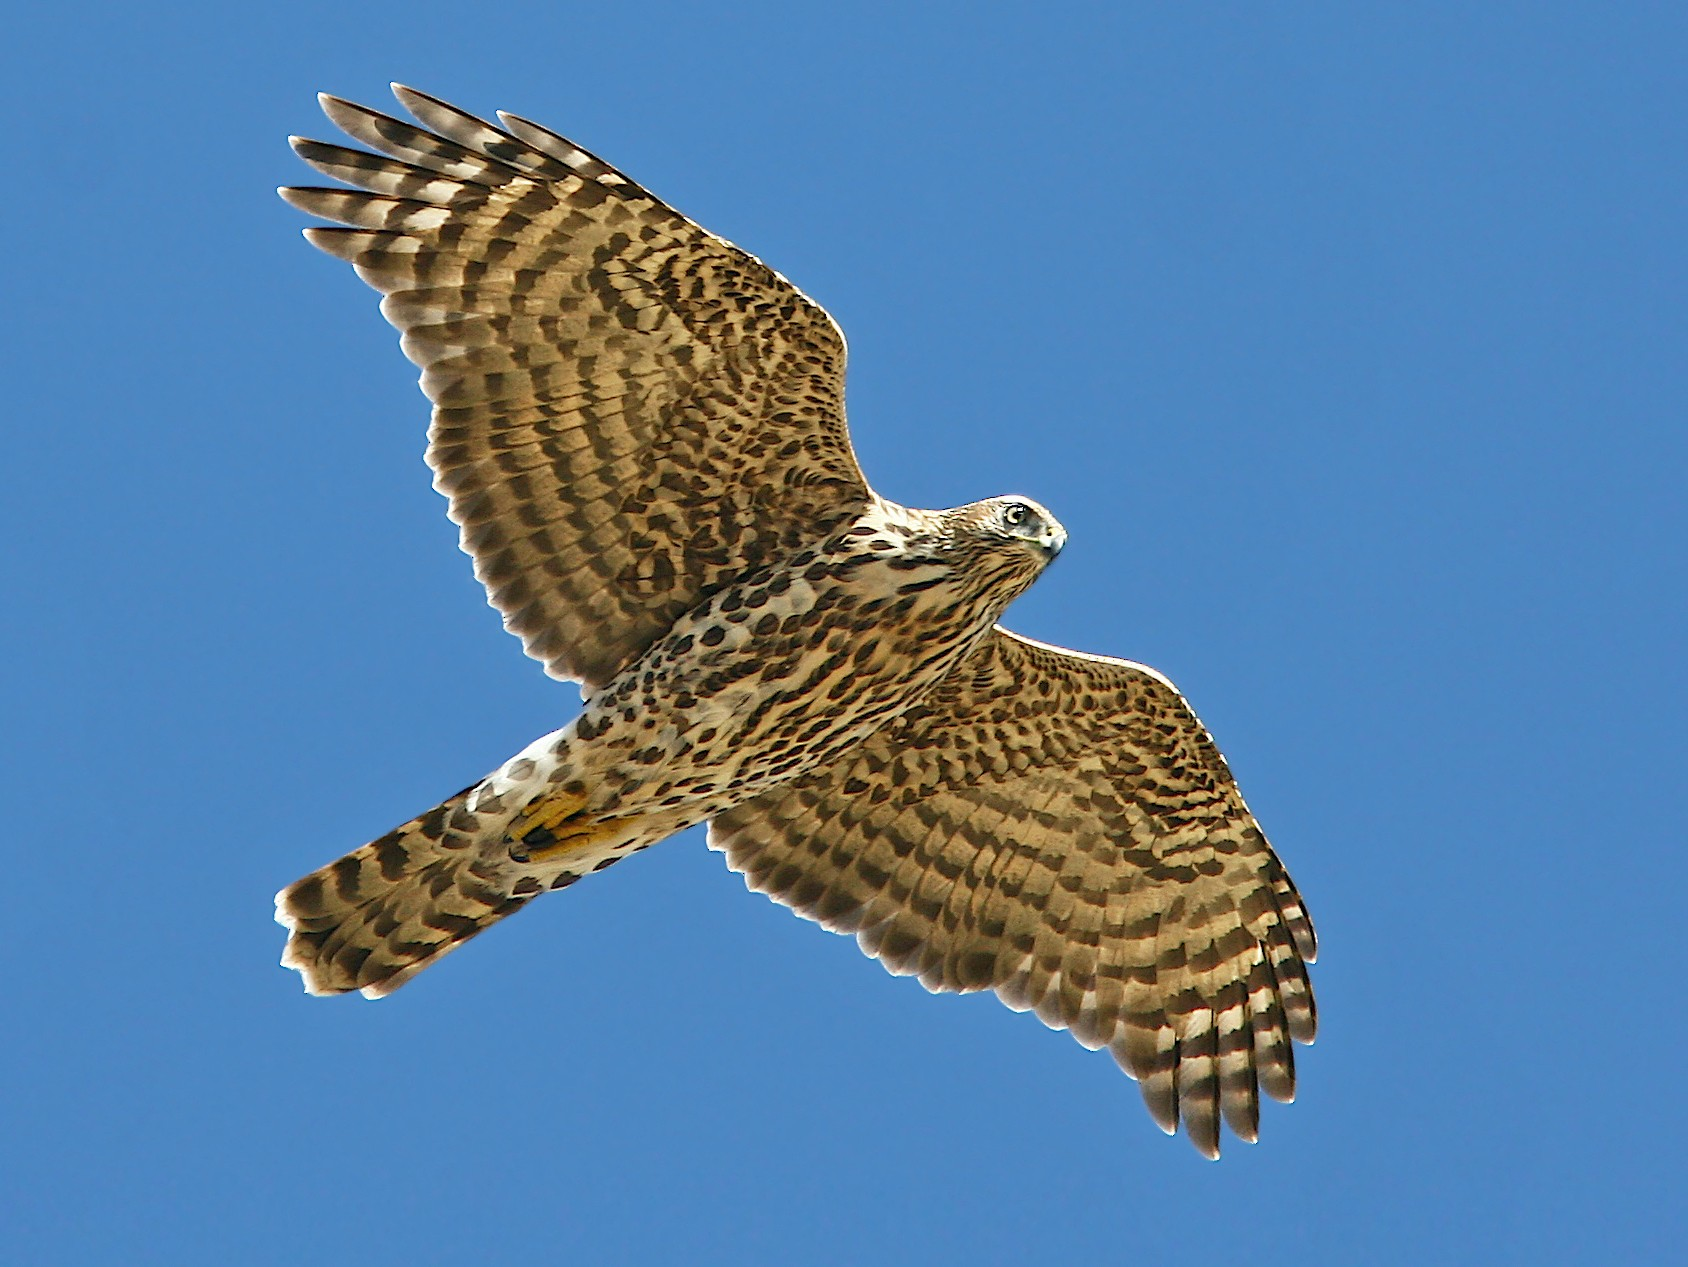 Northern Goshawk - Jerry Liguori